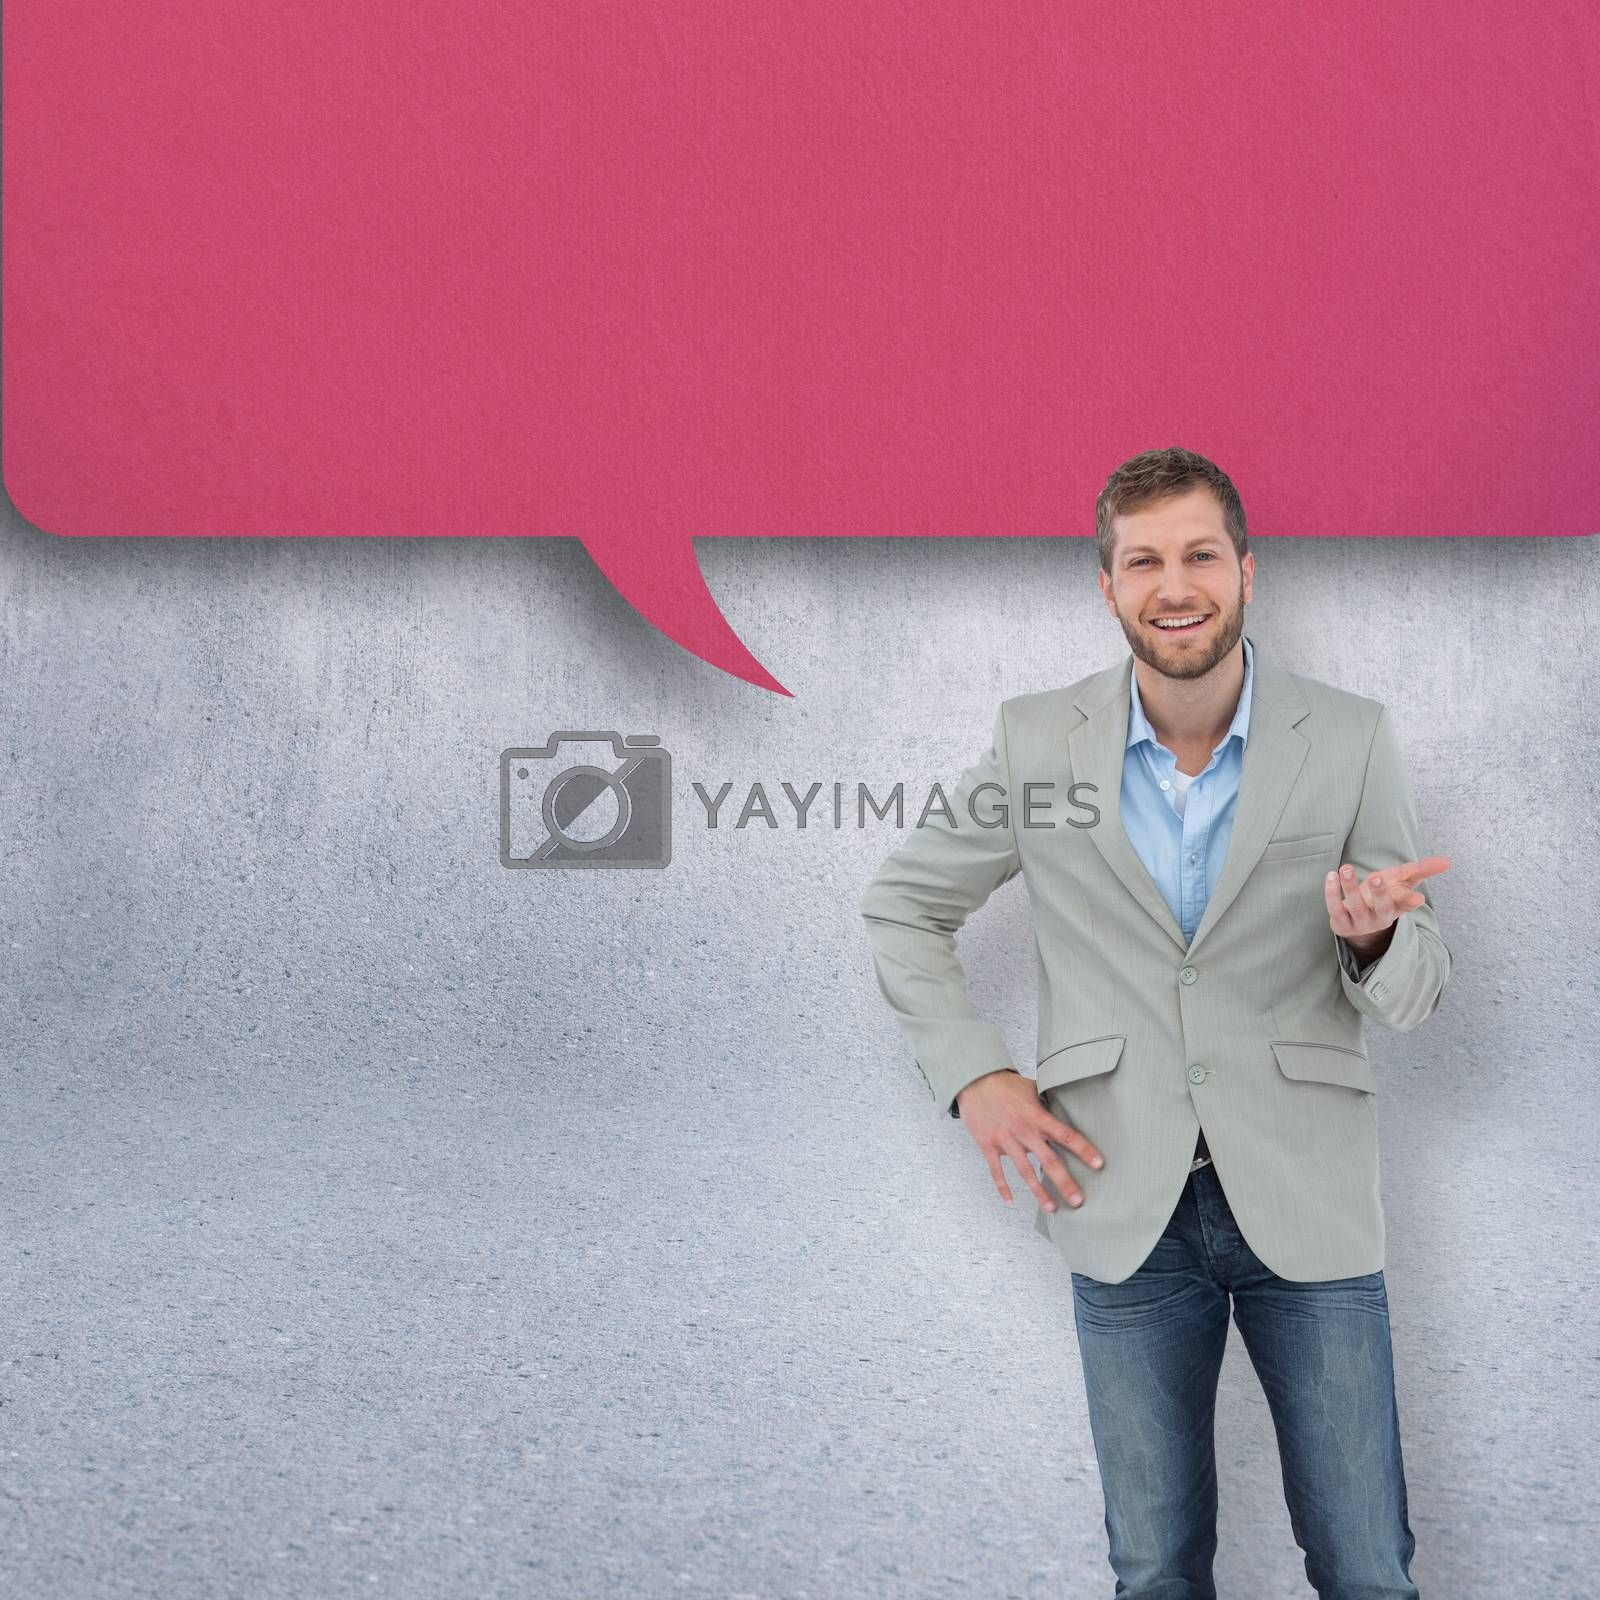 Stylish man smiling and gesturing against grey wall with speech bubble